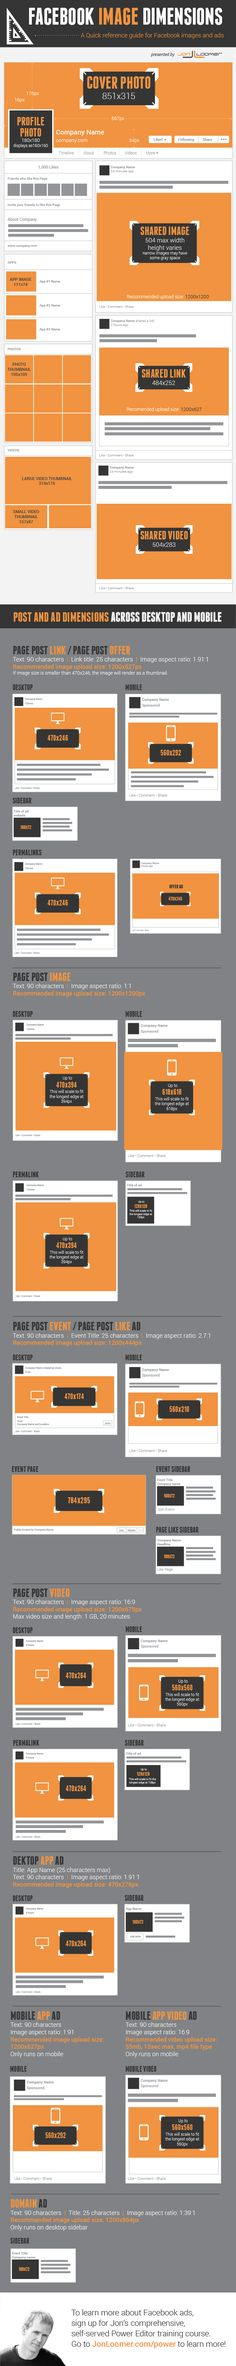 facebook image dimensions All Facebook Image Dimensions: Timeline, Posts, Ads [Infographic]